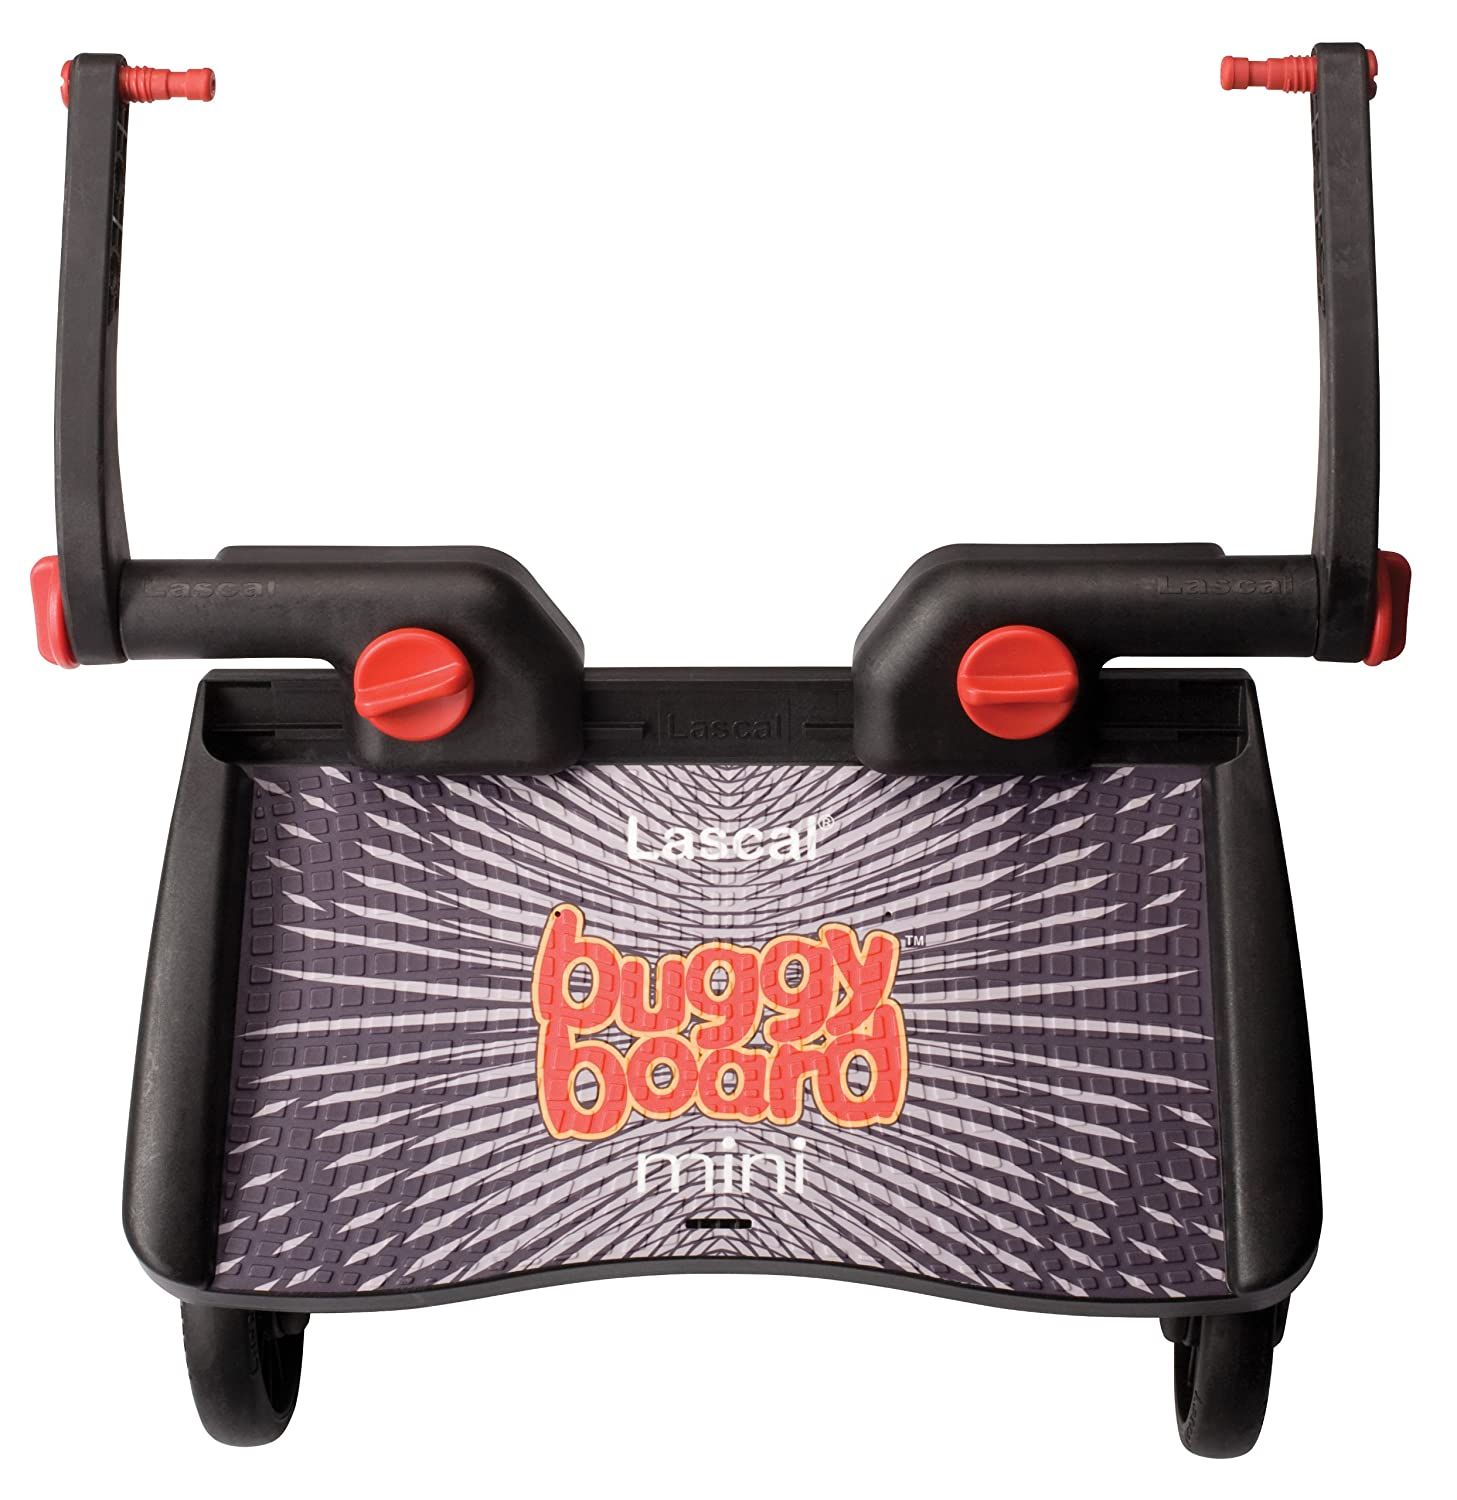 Lascal 2830 Buggy Board Mini with Universal Couplings Black